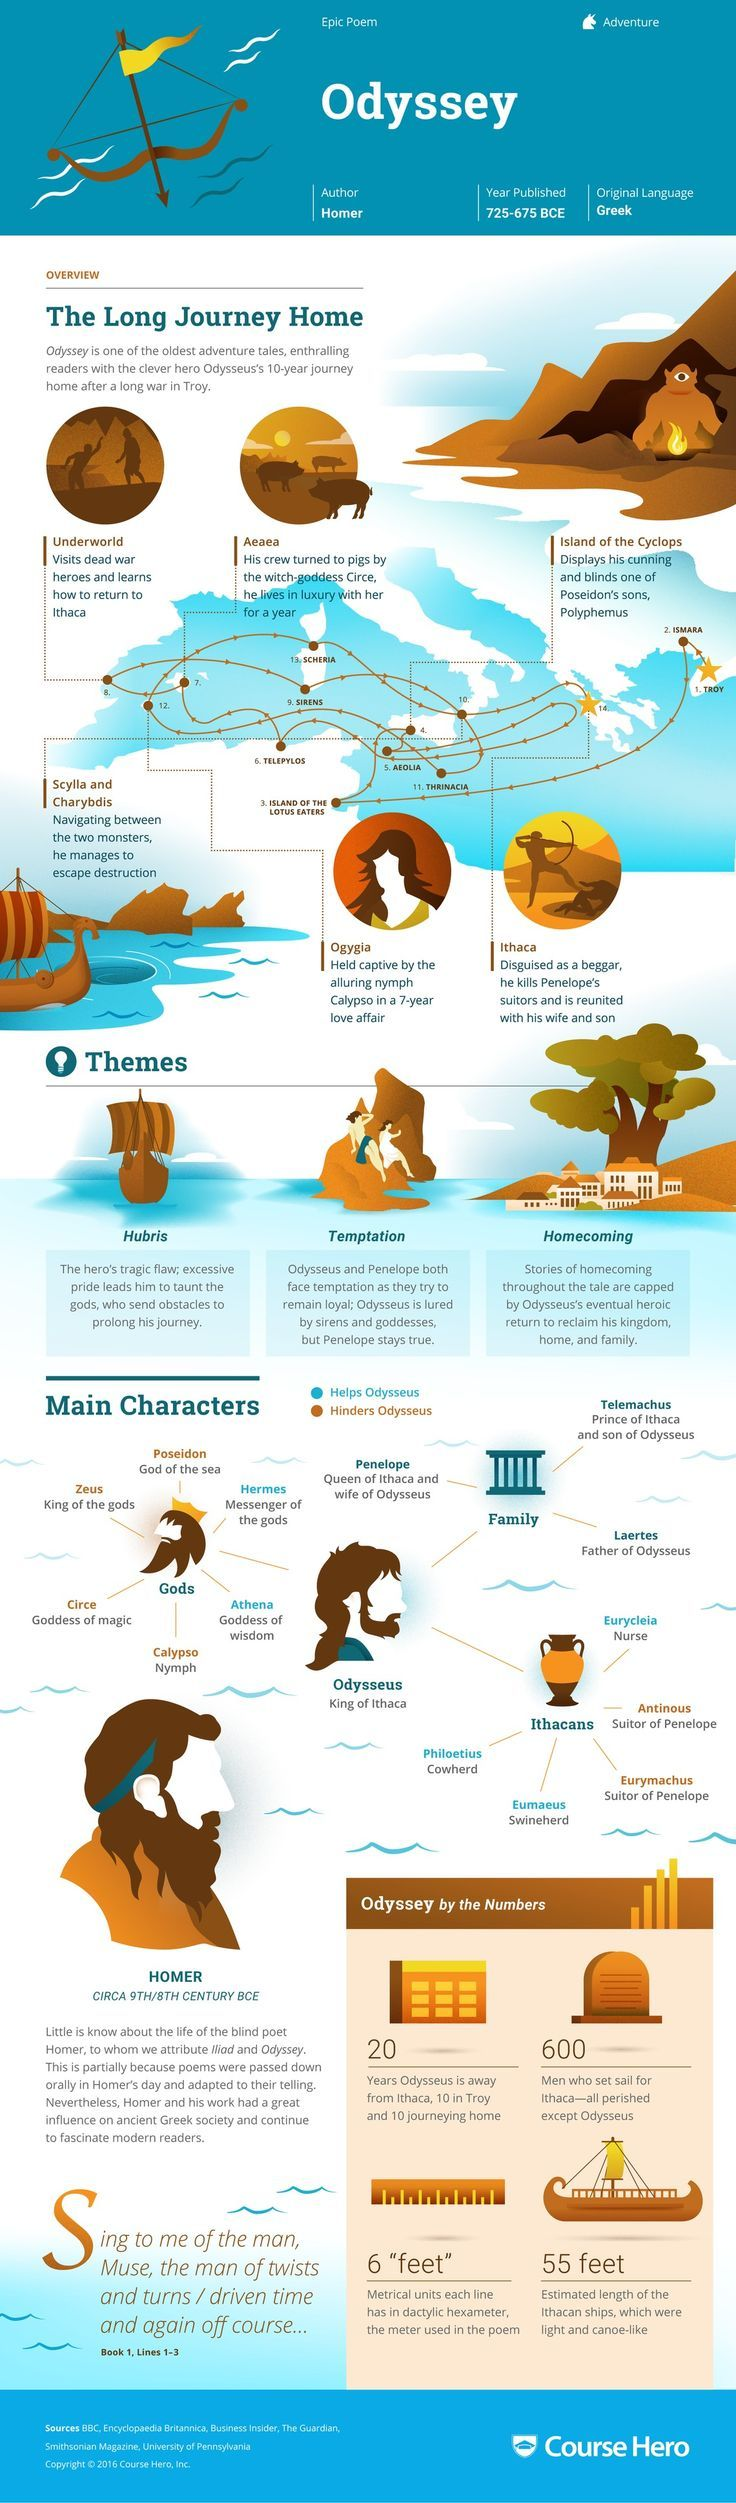 best images about the odyssey greek mythology study guide for homer s the odyssey including book summary character analysis and more learn all about the odyssey ask questions and get the answers